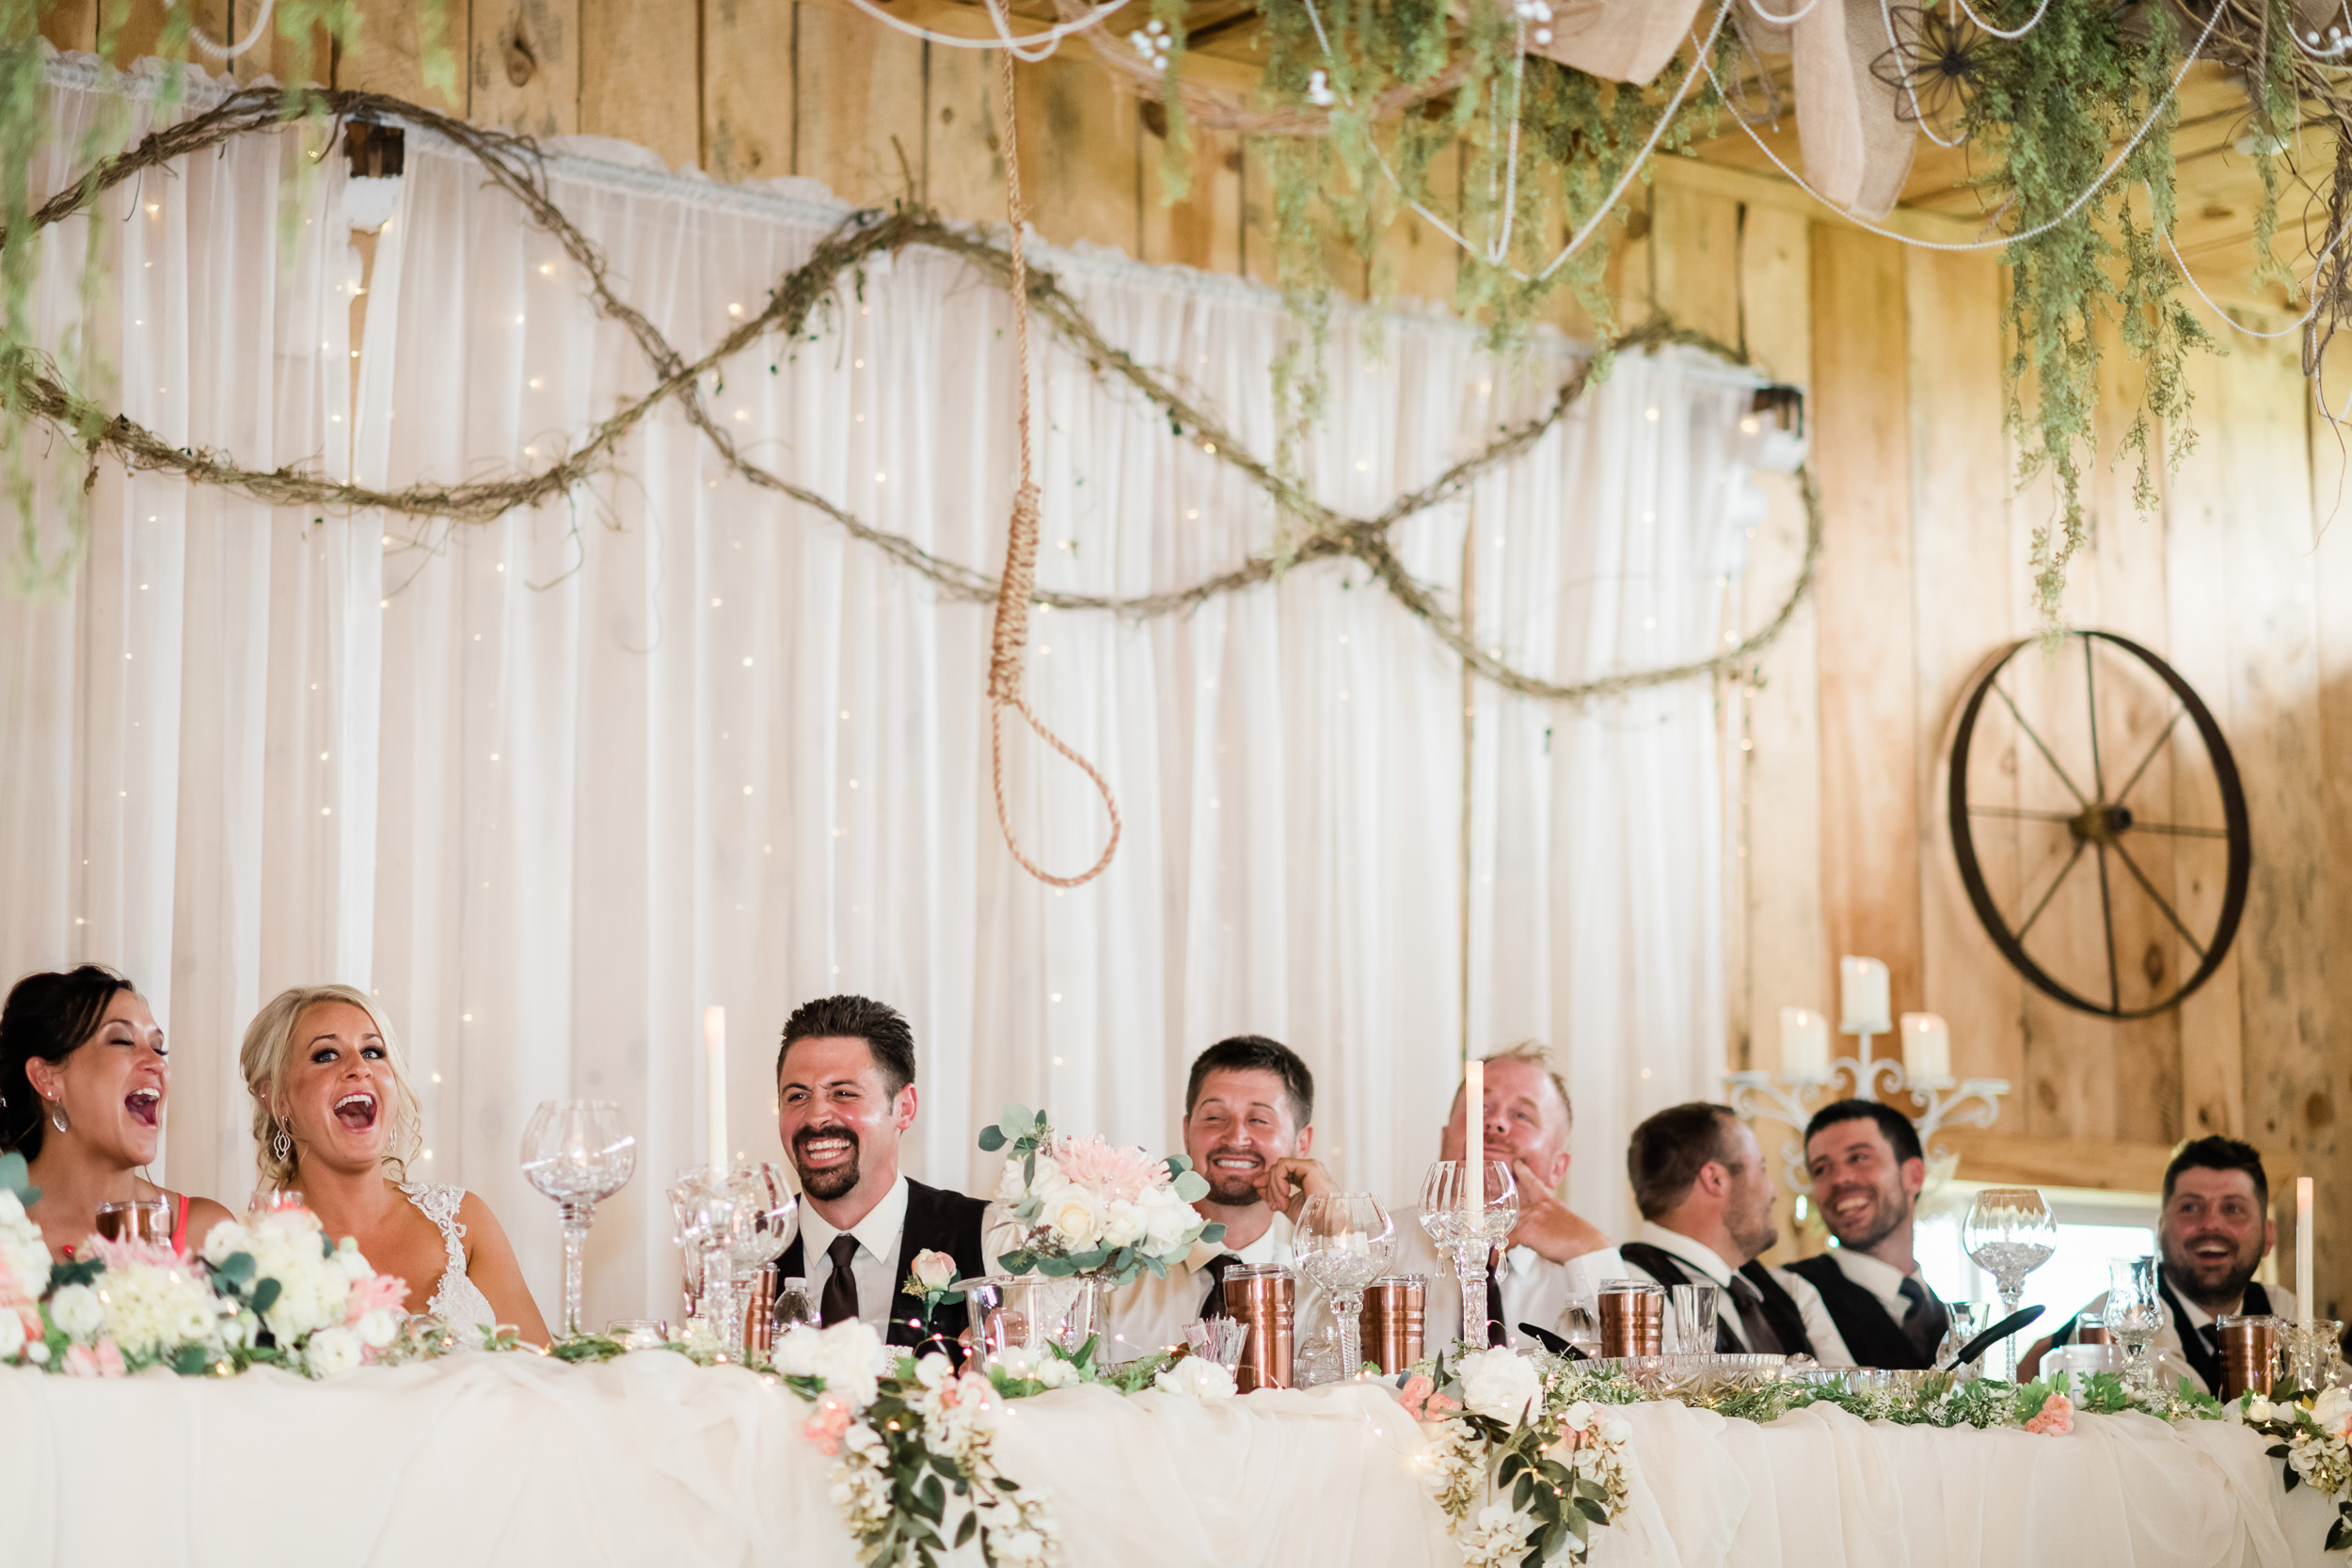 Head table laughing at noose hanging from the ceiling